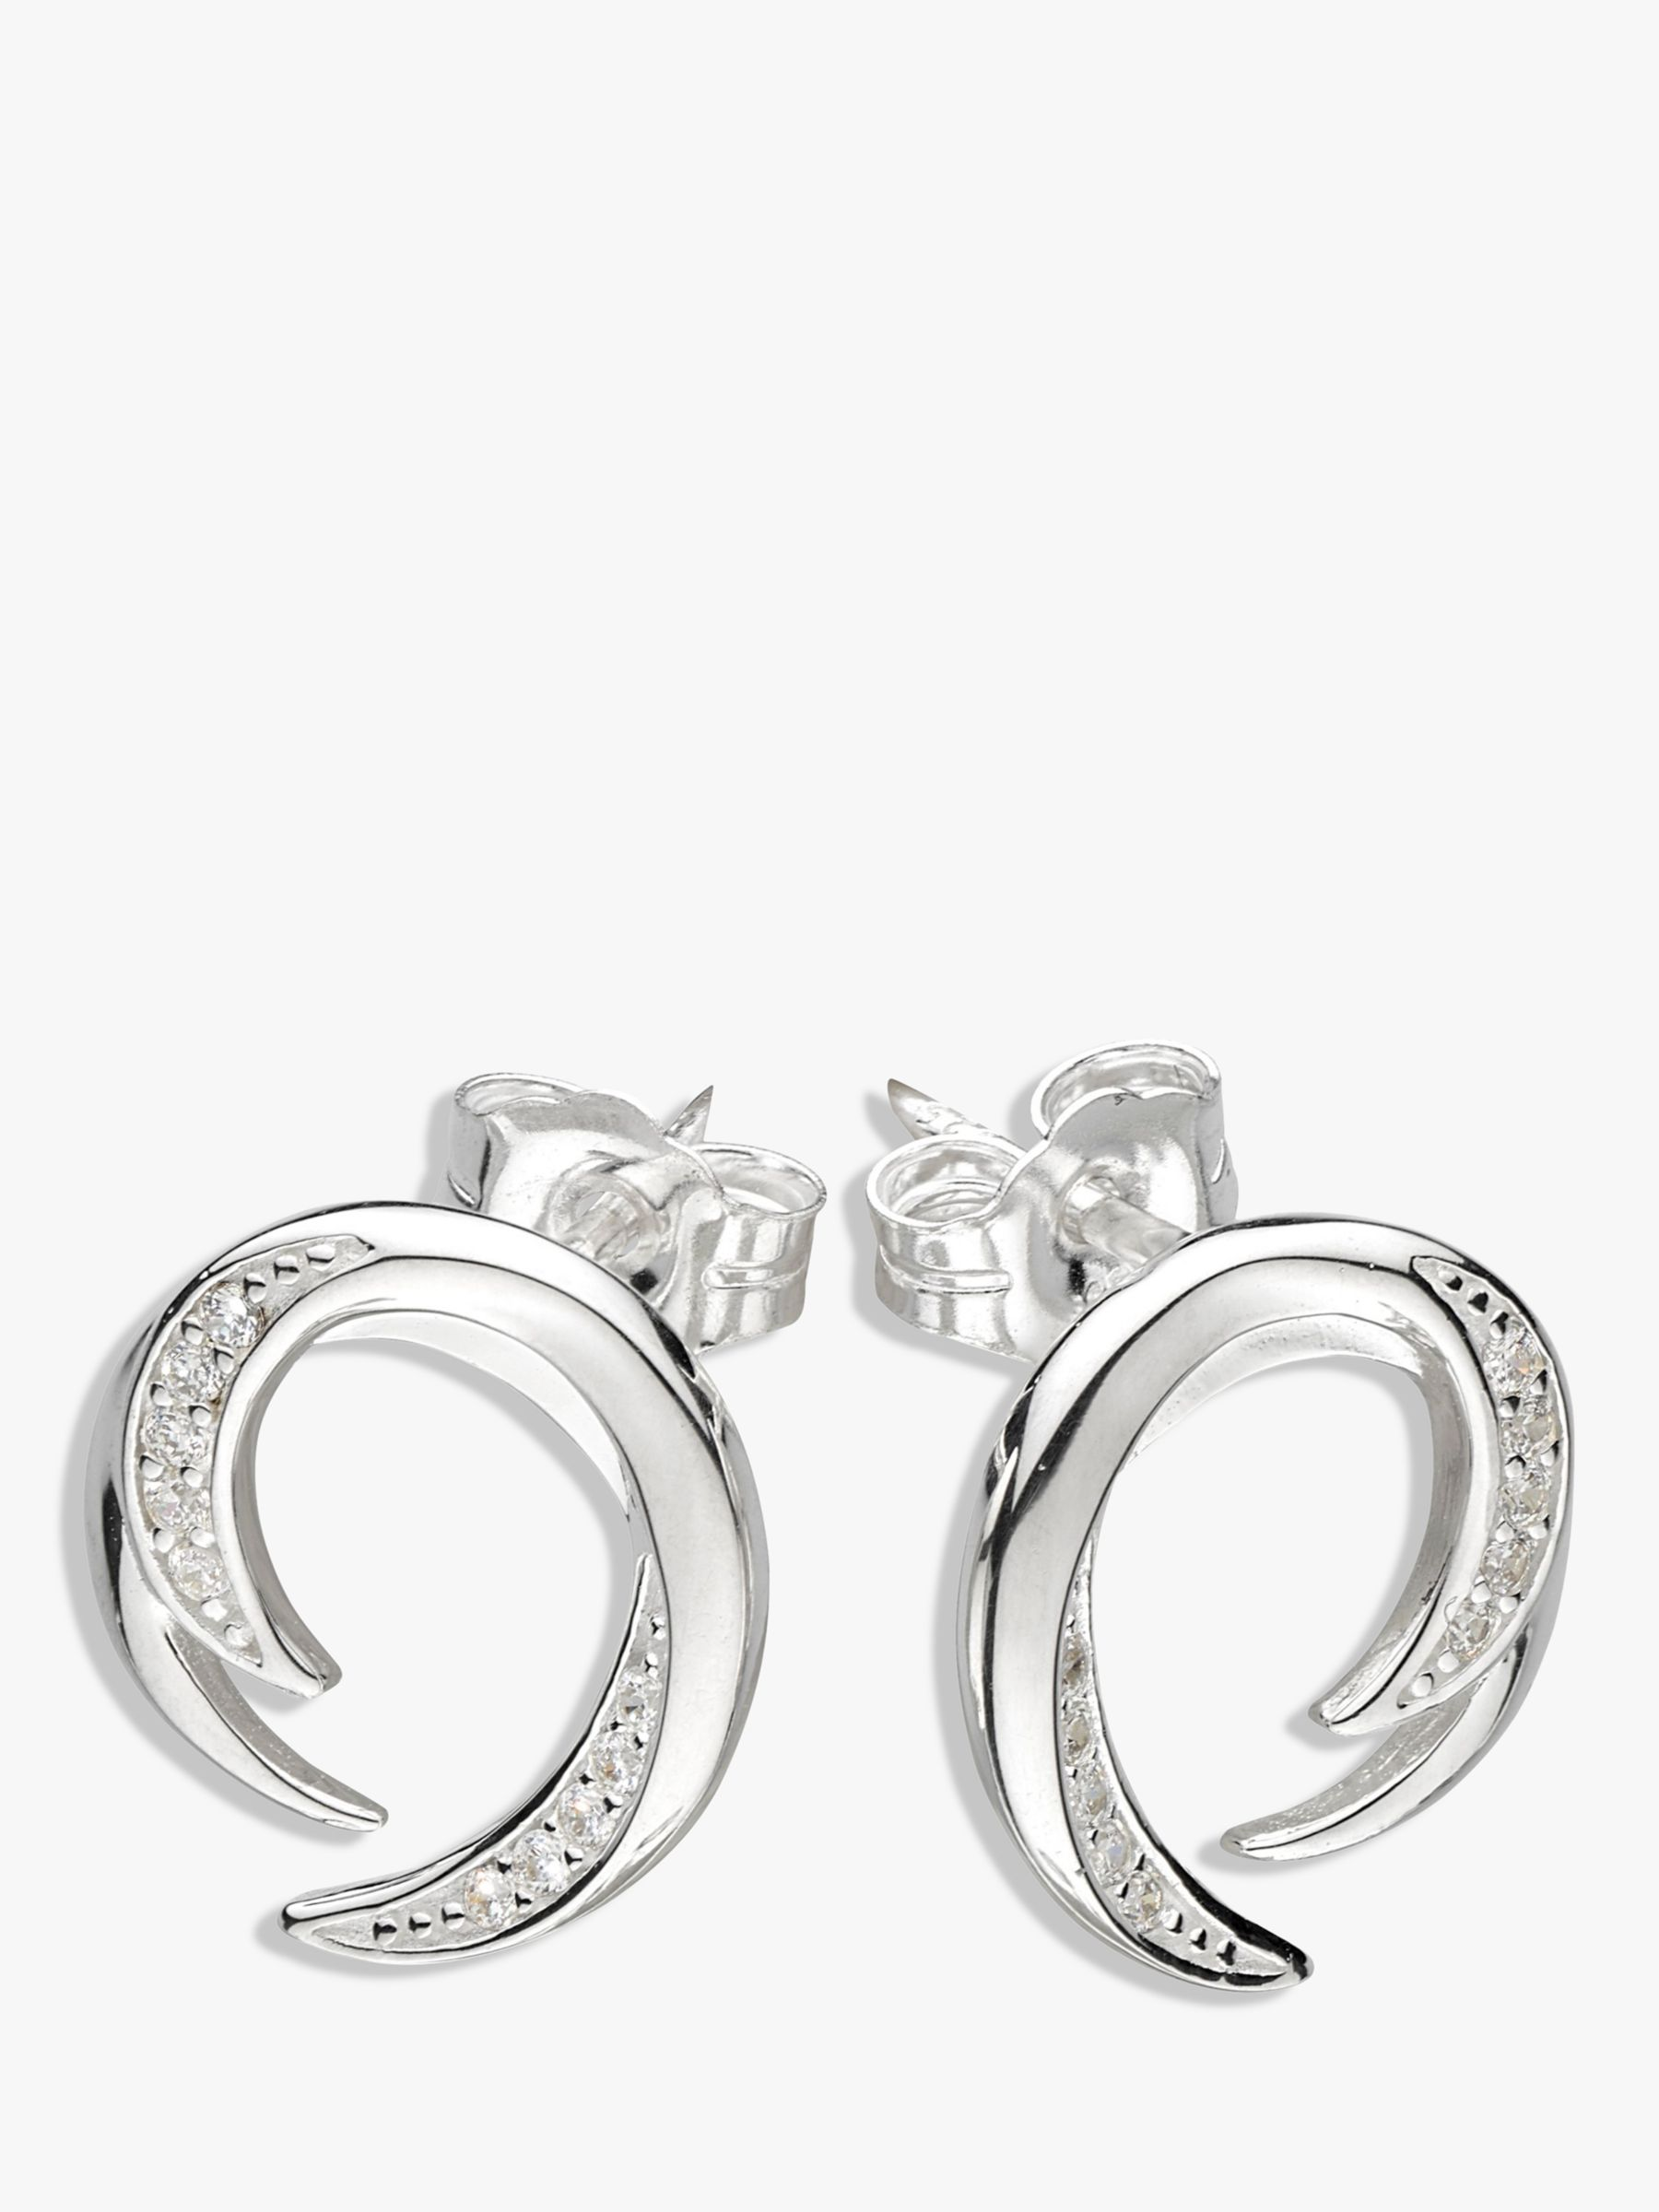 Kit Heath Kit Heath Twist Cubic Zirconia Stud Earrings, Silver